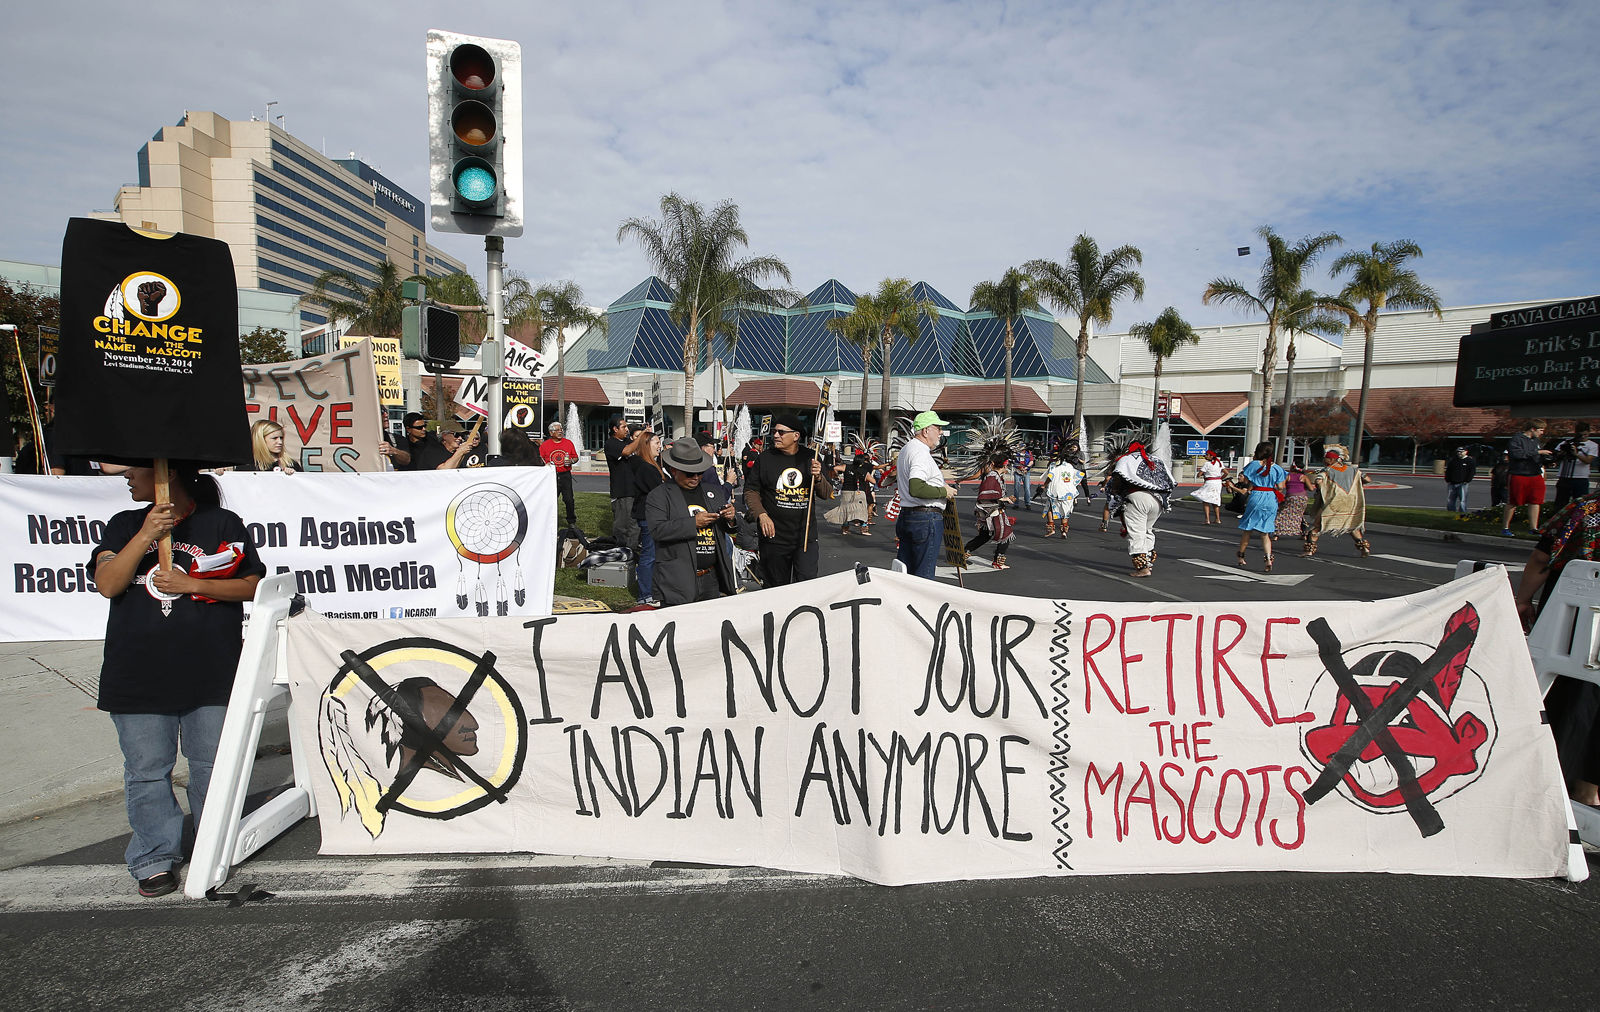 Many activists say the name Redskins is offensive, in recent years there has been an increased effort to attempt to get the team to change the name. In this photo from 2014, a group protests the Washington Redskins name across from Levi's Stadium before an NFL football game between the Redskins and the San Francisco 49ers. (AP Photo/Tony Avelar)